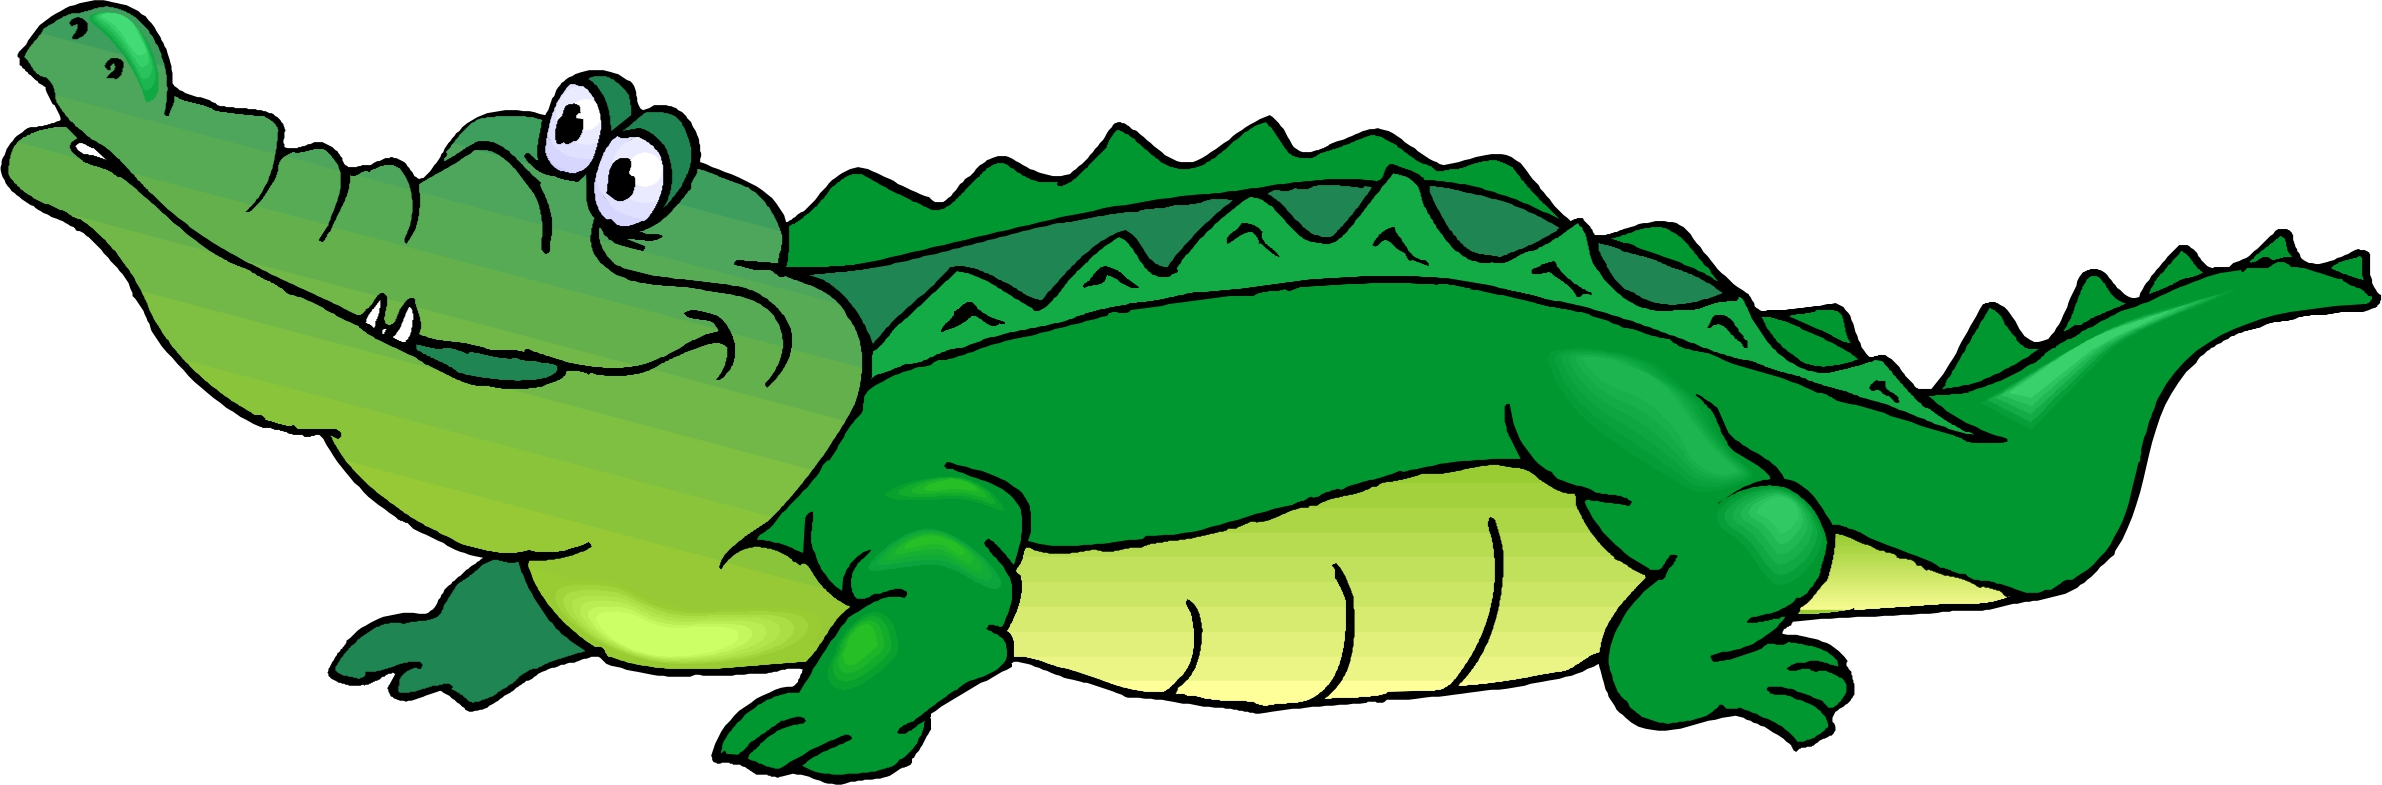 gator clip art | Use these free images for your websites, art projects, reports, and ... | Things to Wear | Pinterest | Clip art, Search and Free images